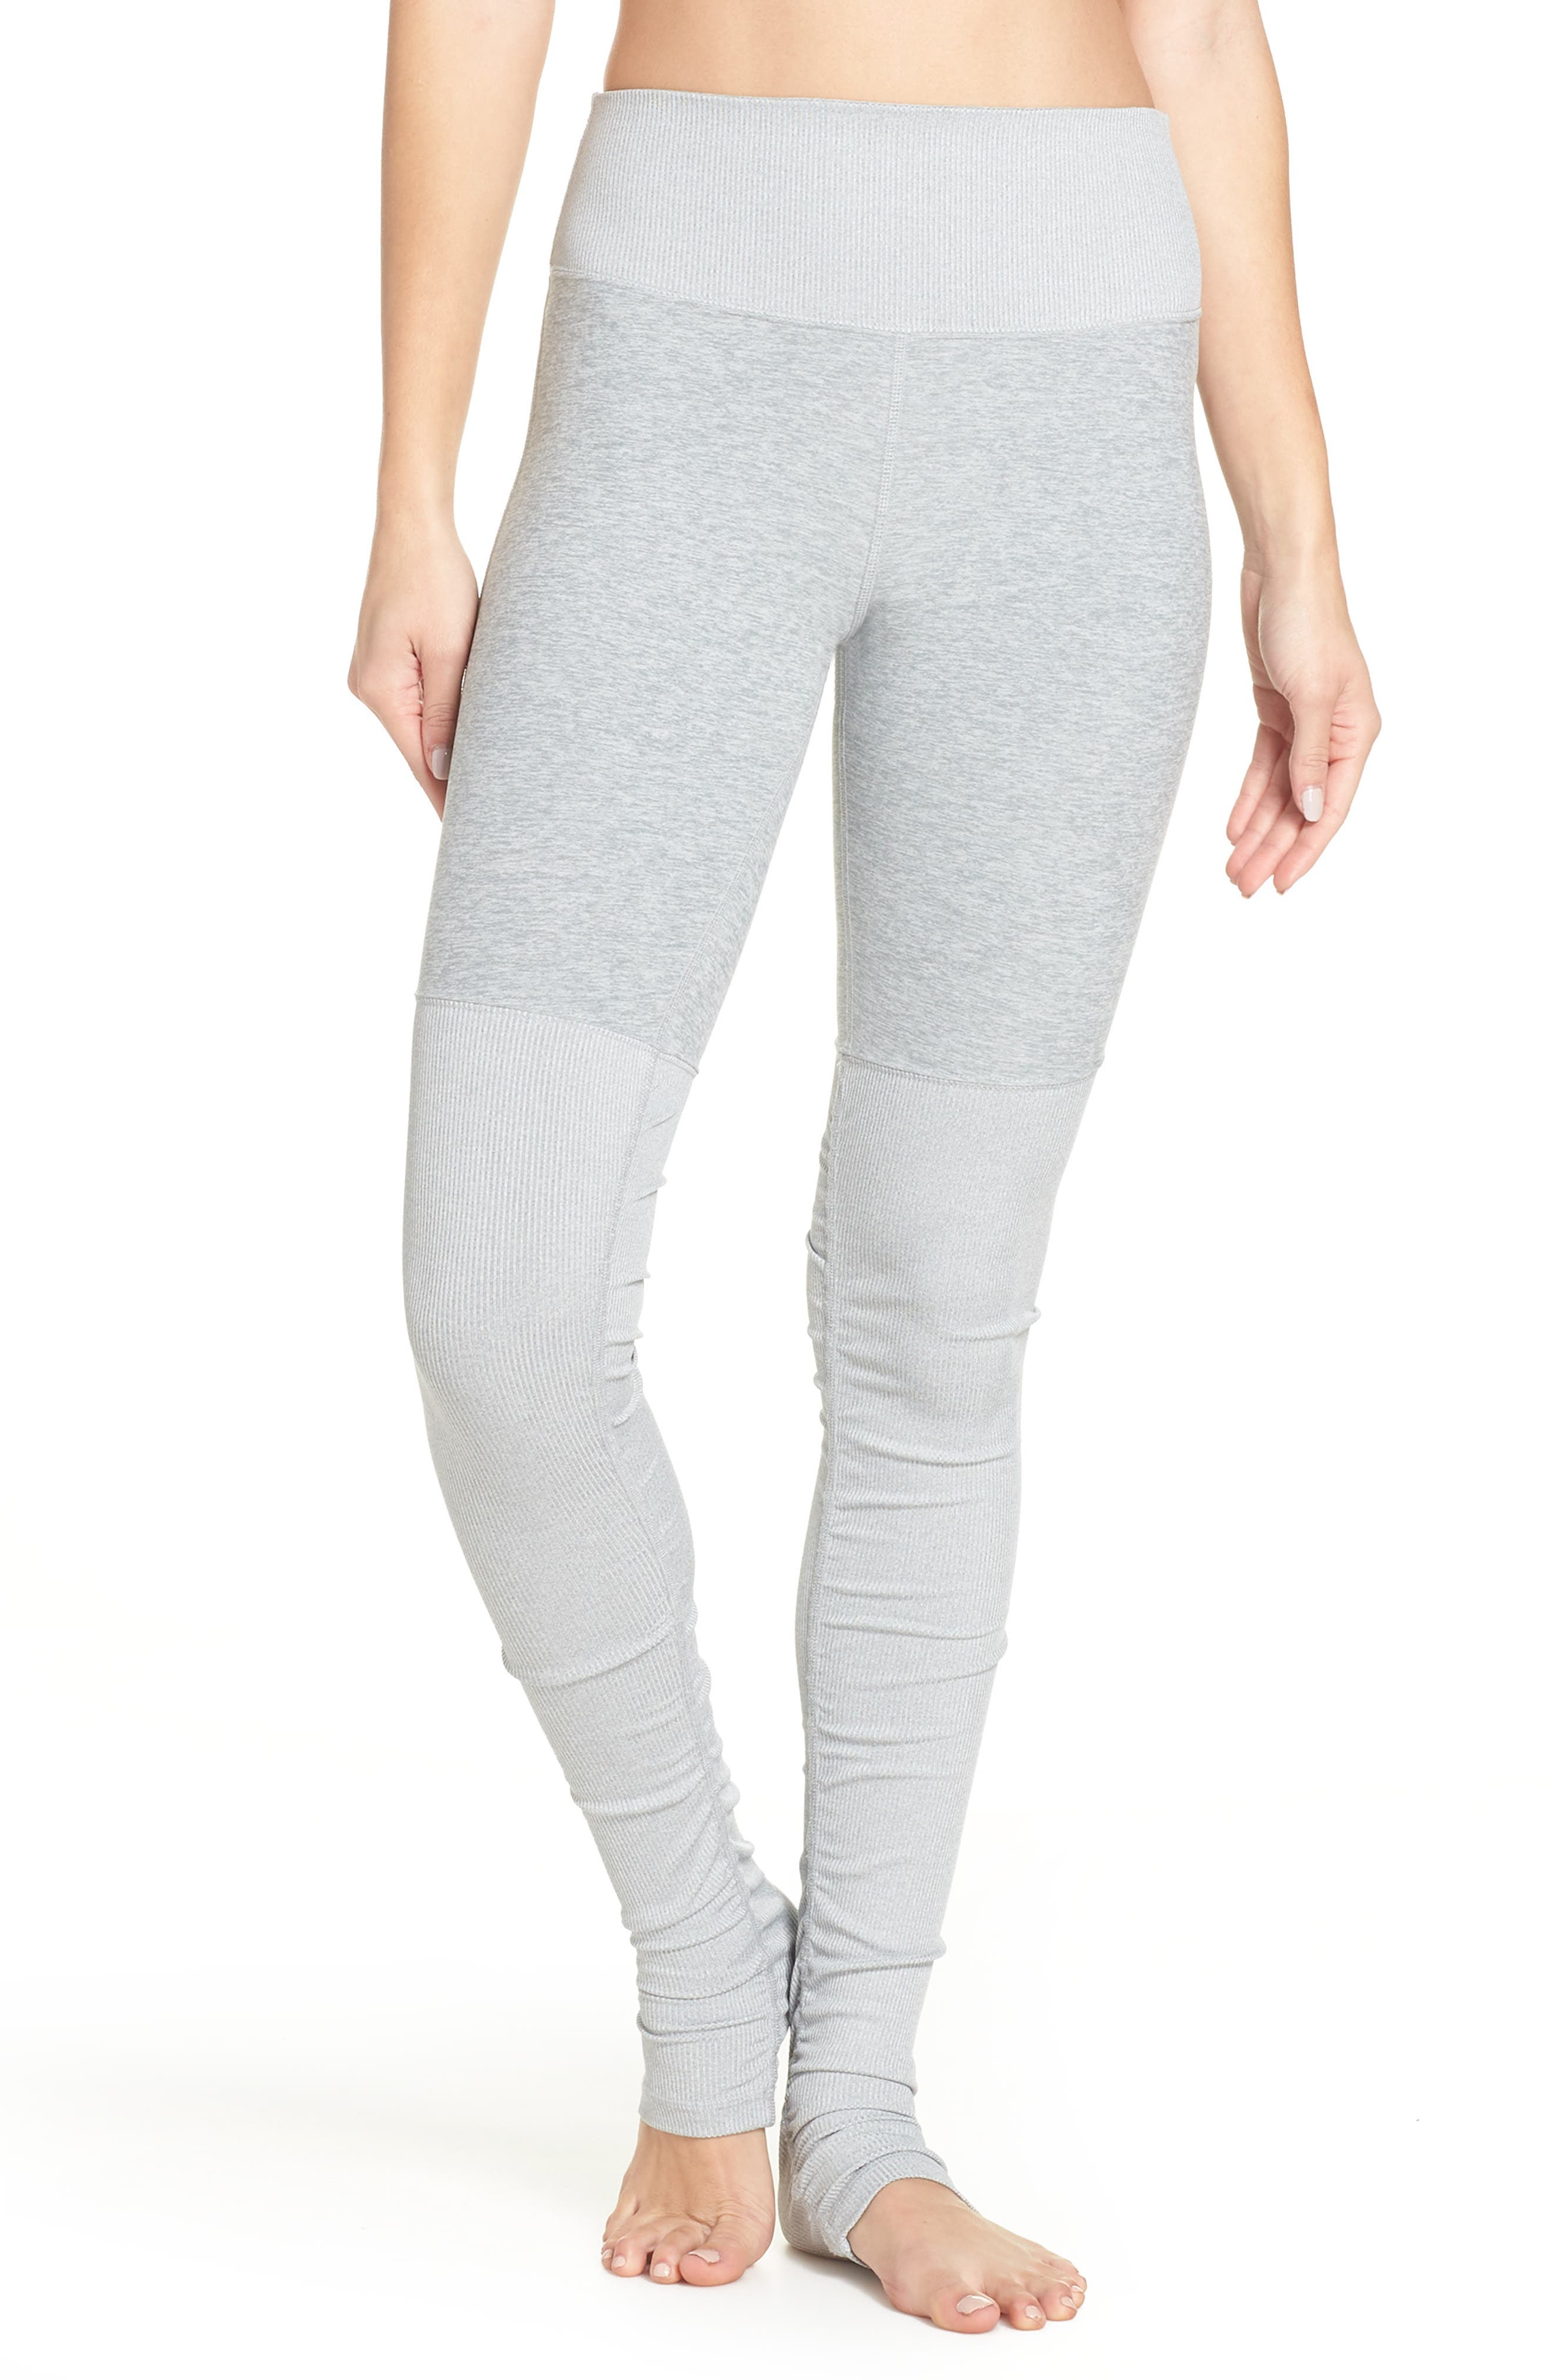 ALO, Alosoft Goddess Leggings, Main thumbnail 1, color, ZINC HEATHER